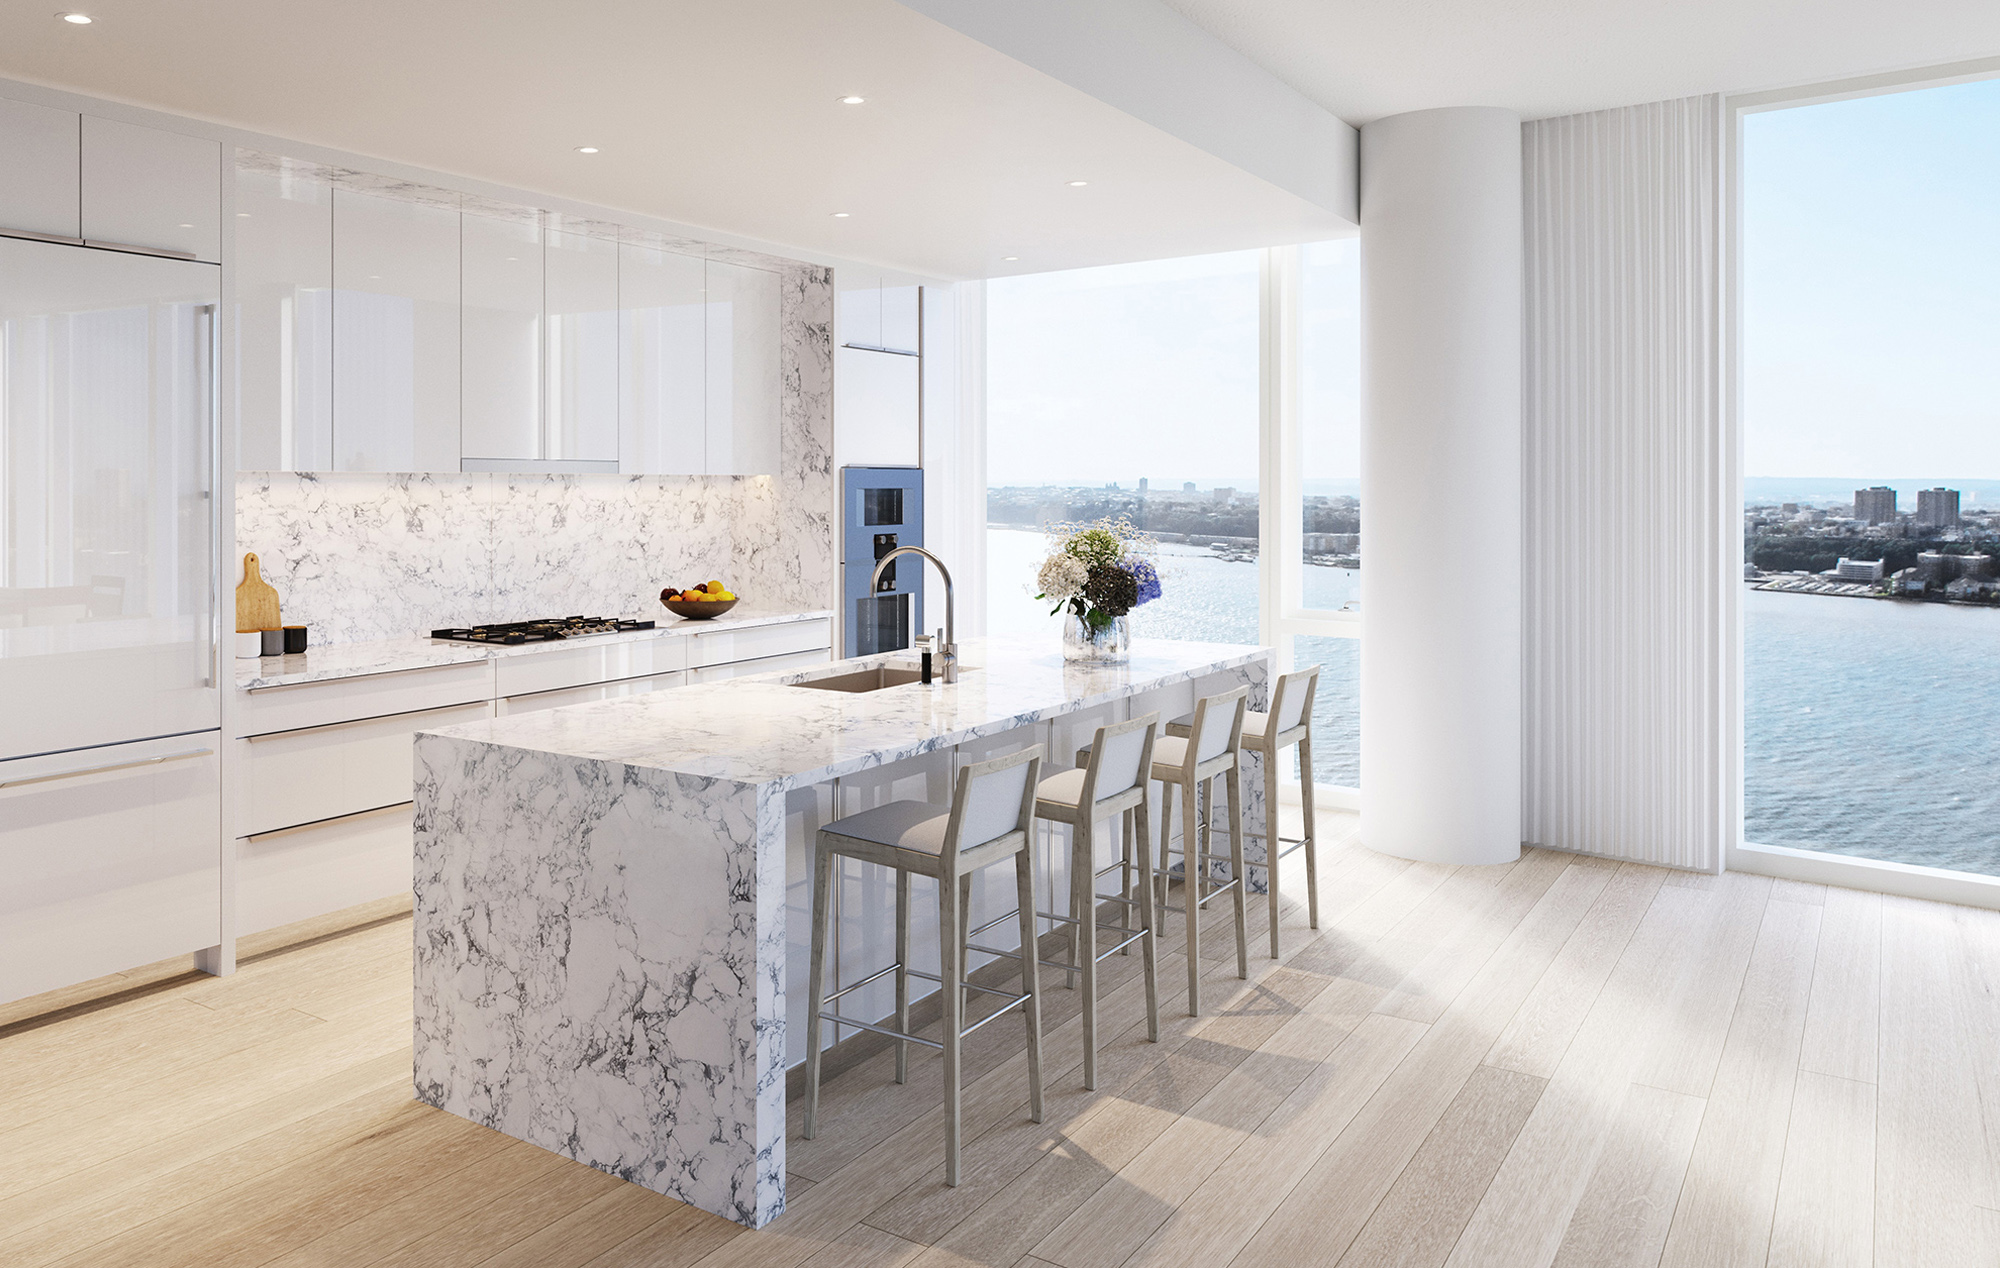 Luxury Condominiums for Sale in NYC - Waterline Square